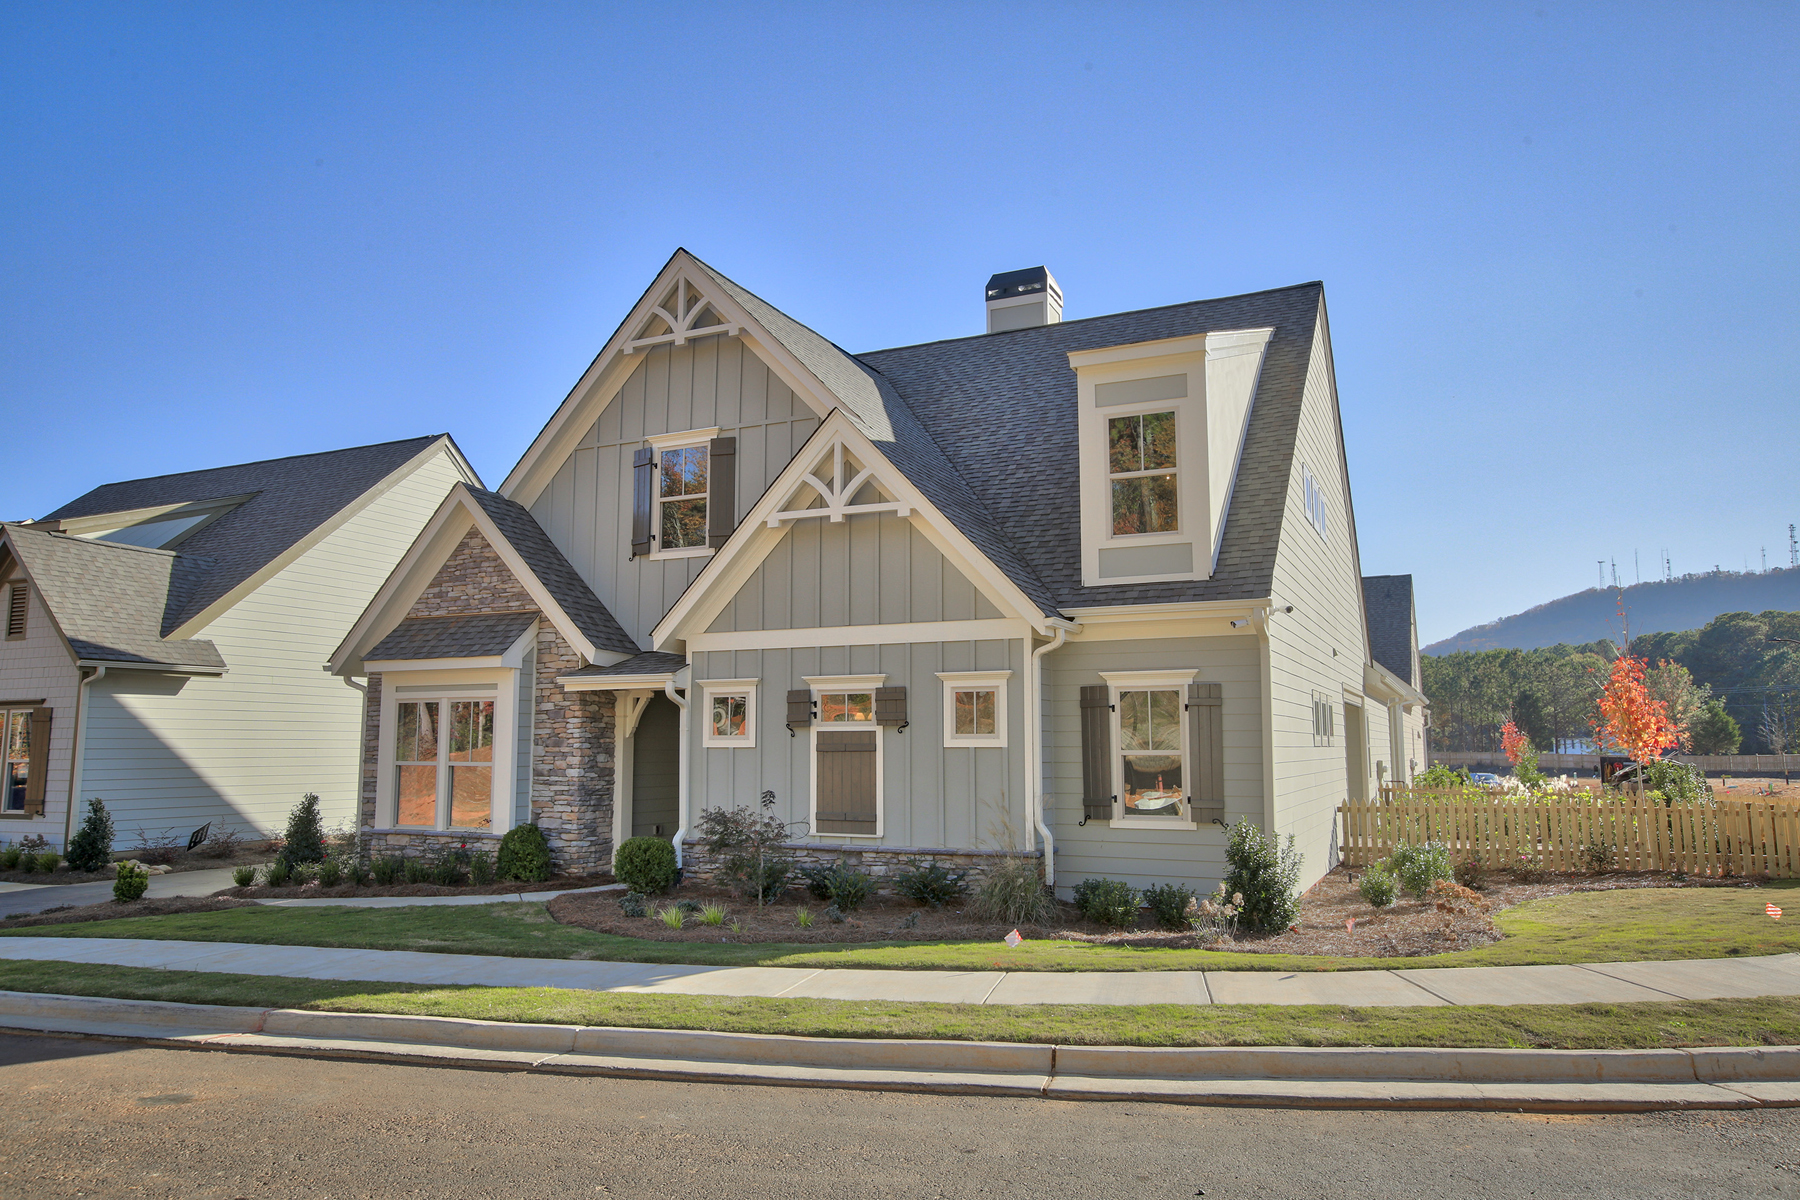 Single Family Home for Sale at Premier Home In The New Longleaf Woodstock Active Adult Community 195 Foxtail Road Woodstock, Georgia 30188 United States